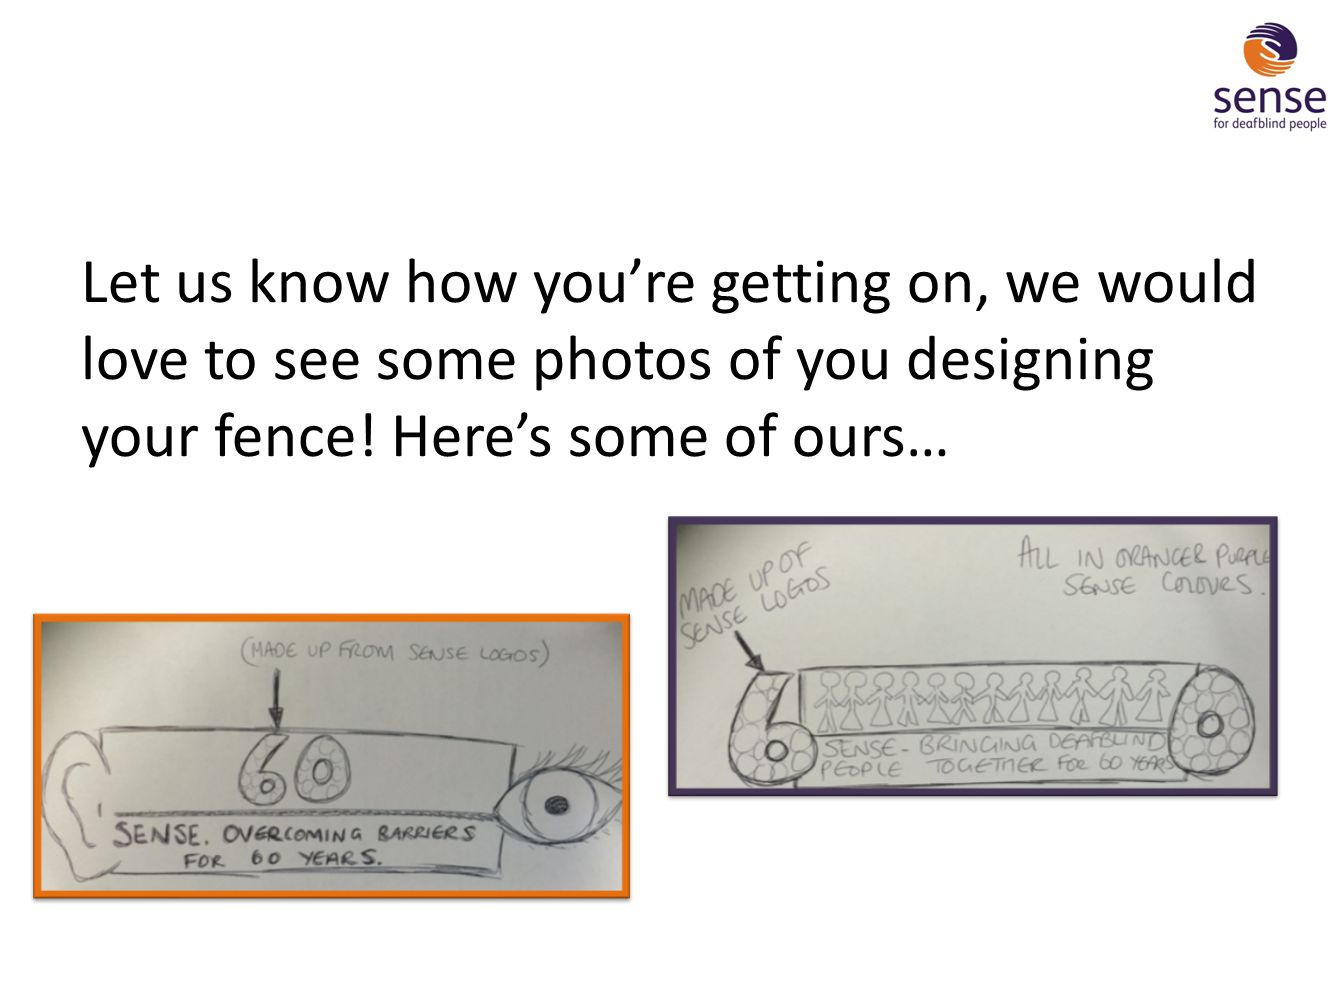 Let us know how you're getting on, we would love to see some photos of you designing your fence.